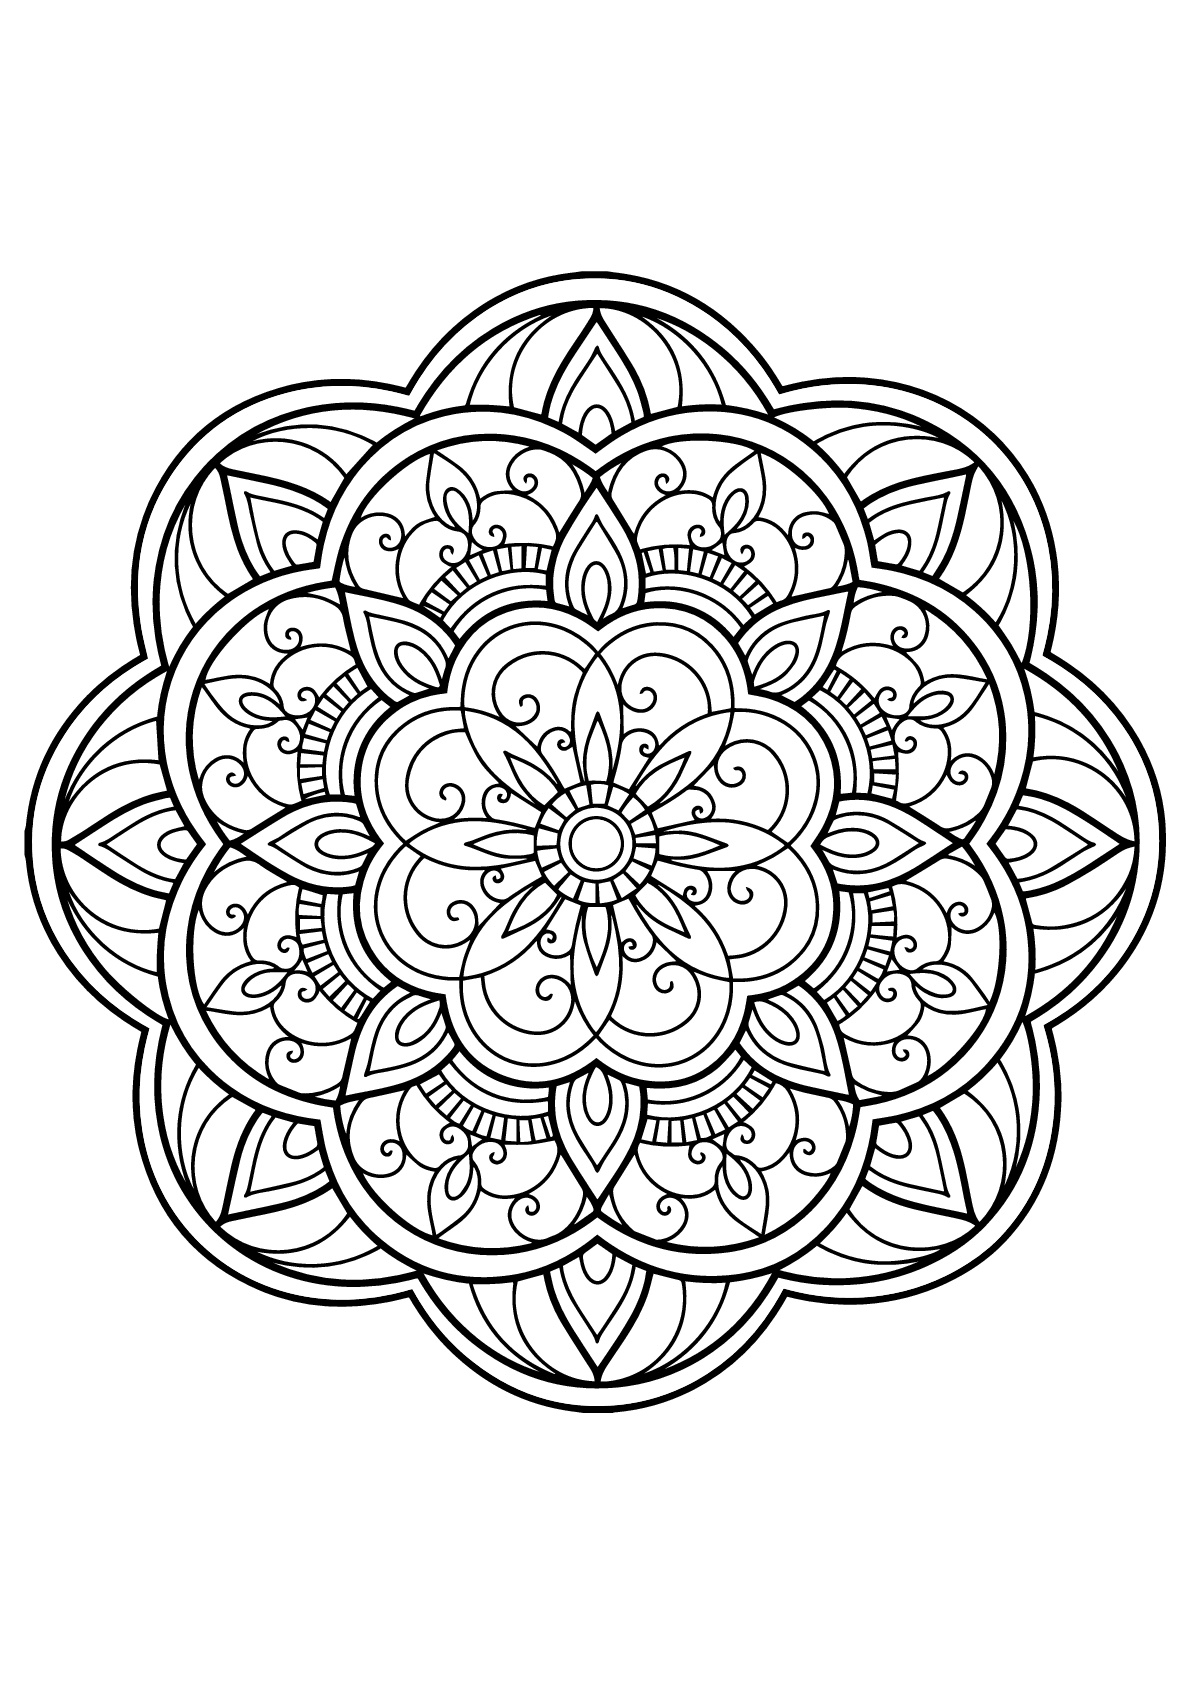 free mandala coloring pages for adults coloring pages for pages coloring adults free mandala